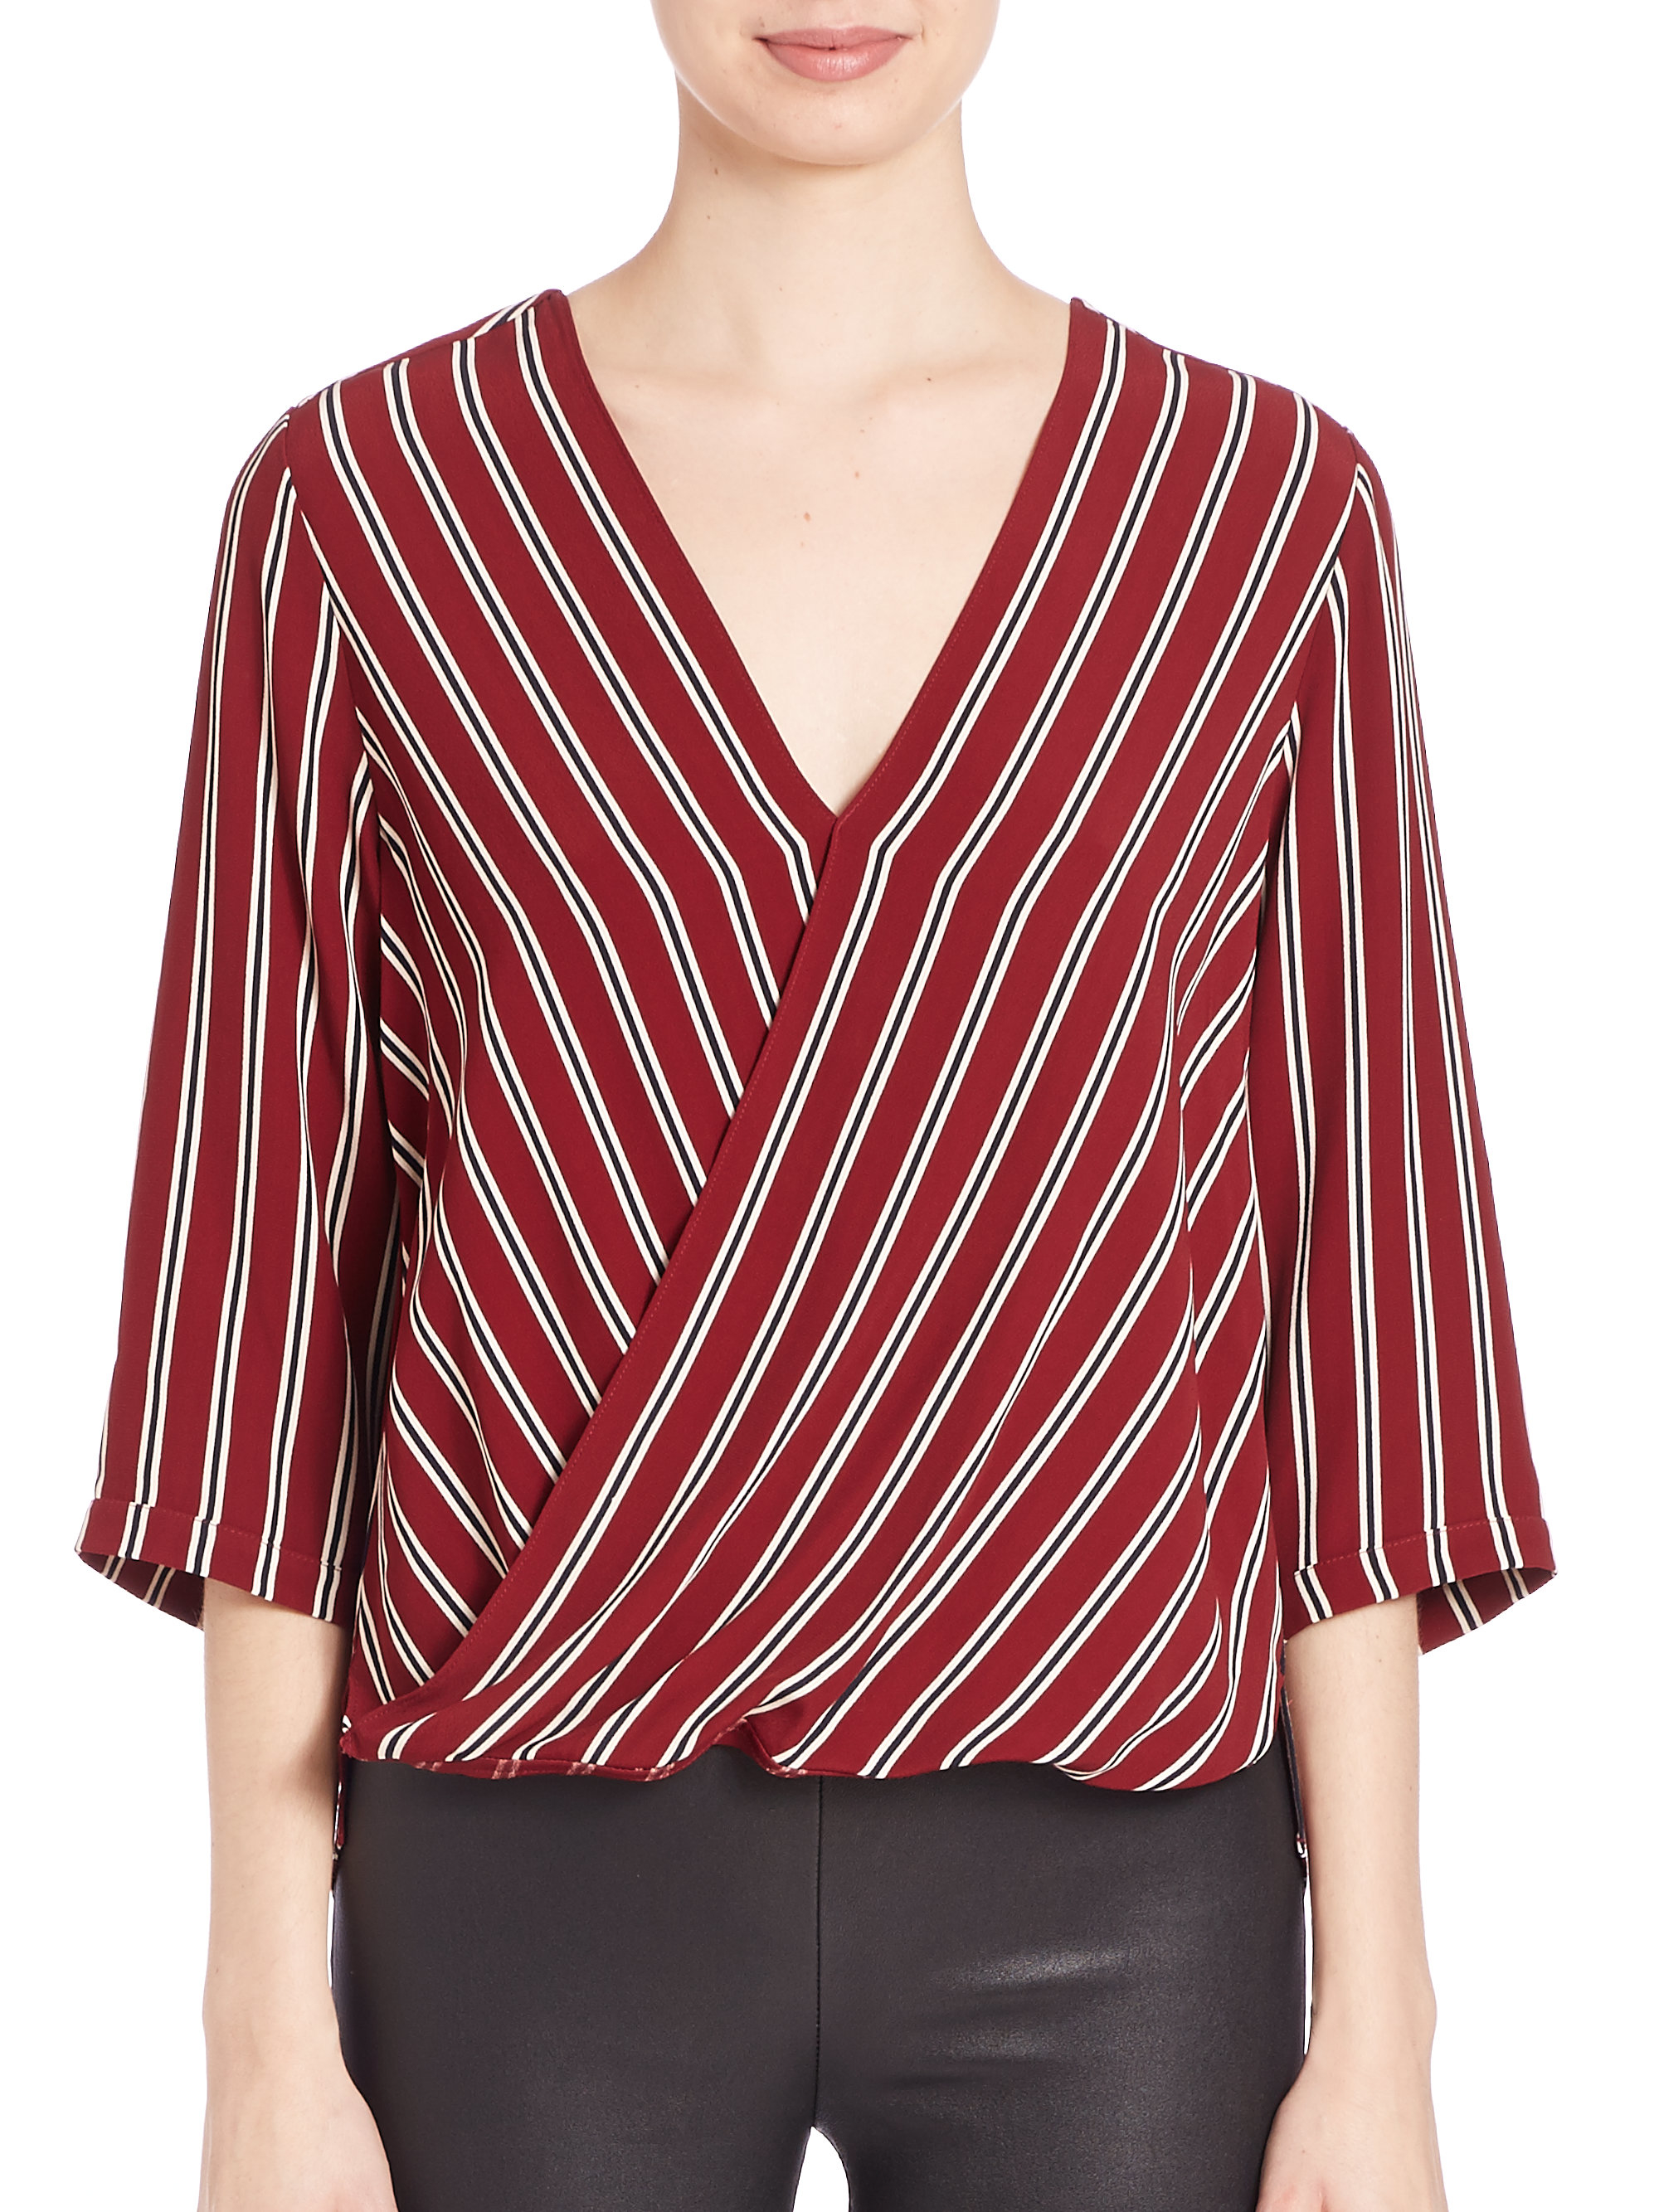 687980c4ca2e7d Lyst - Bailey 44 Intersection Striped Faux-wrap Top in Red